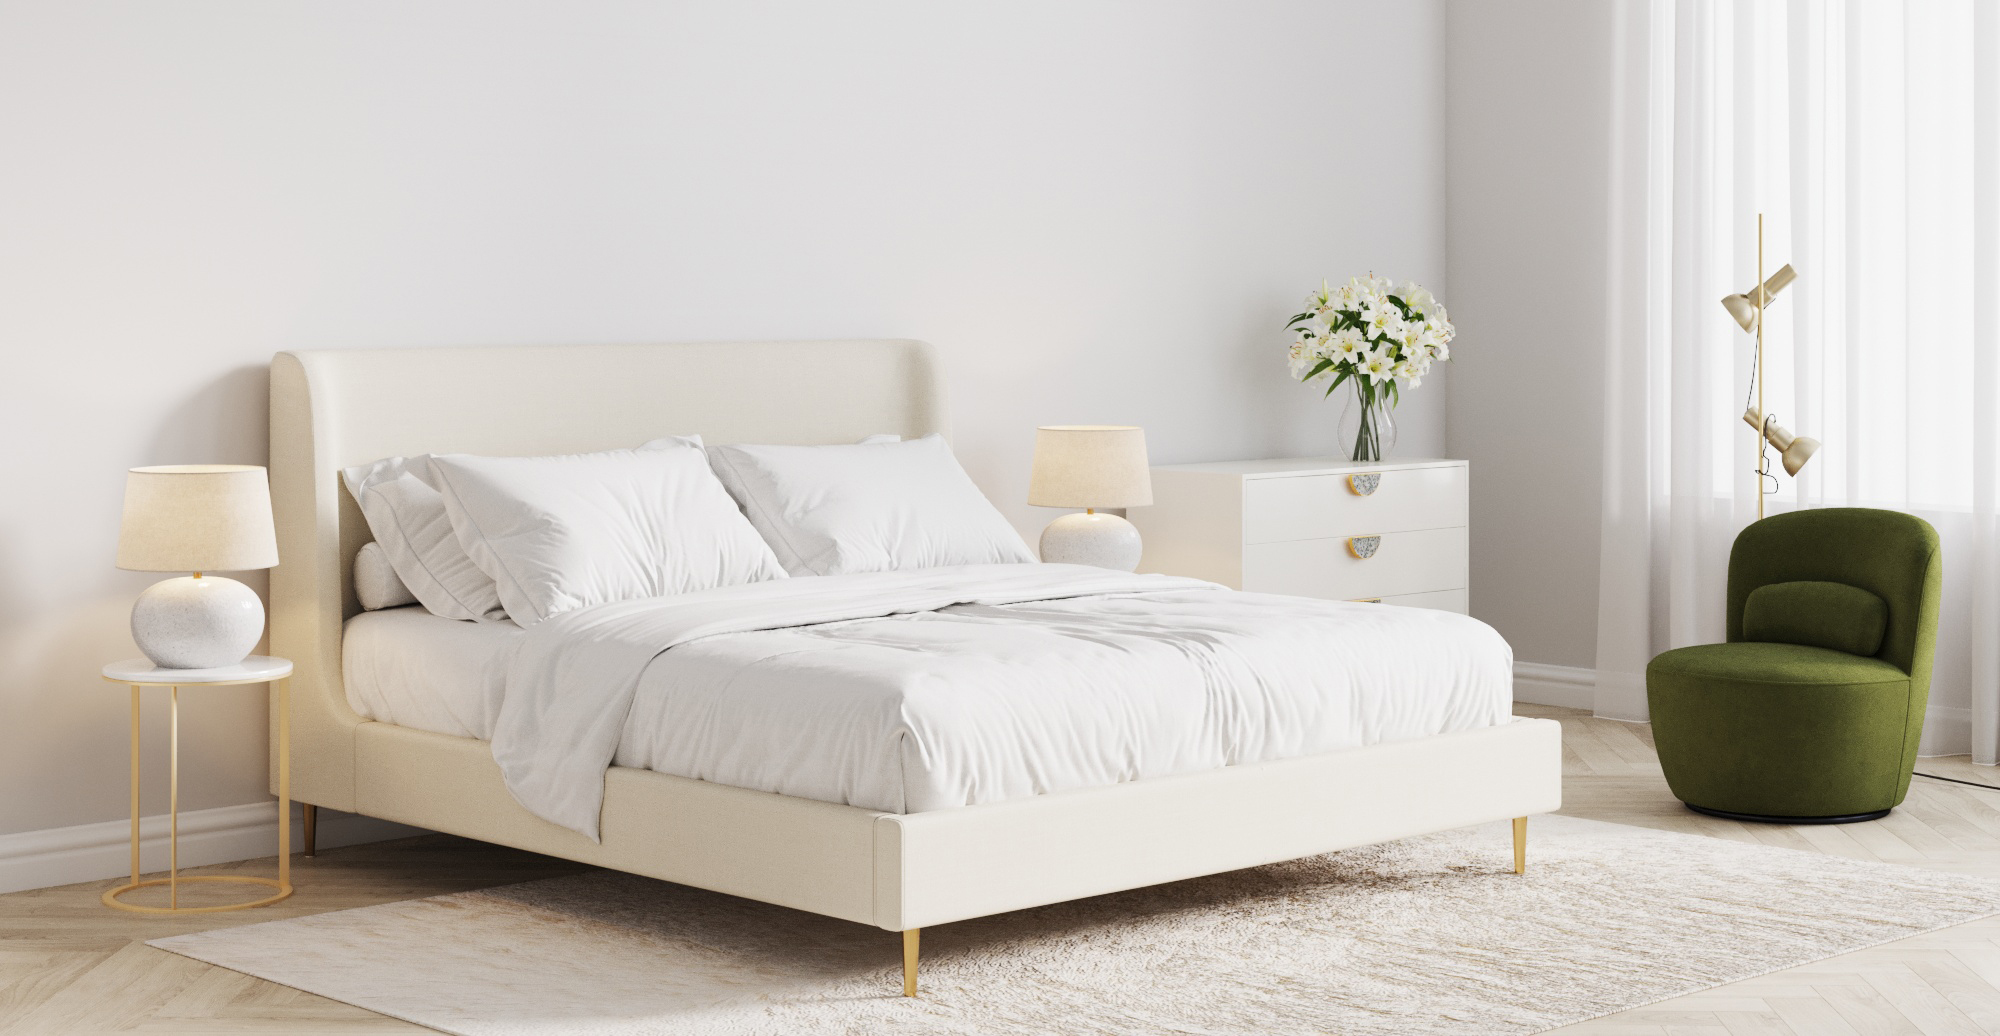 Brosa Gia Queen Size Bed Frame styled in classic bedroom